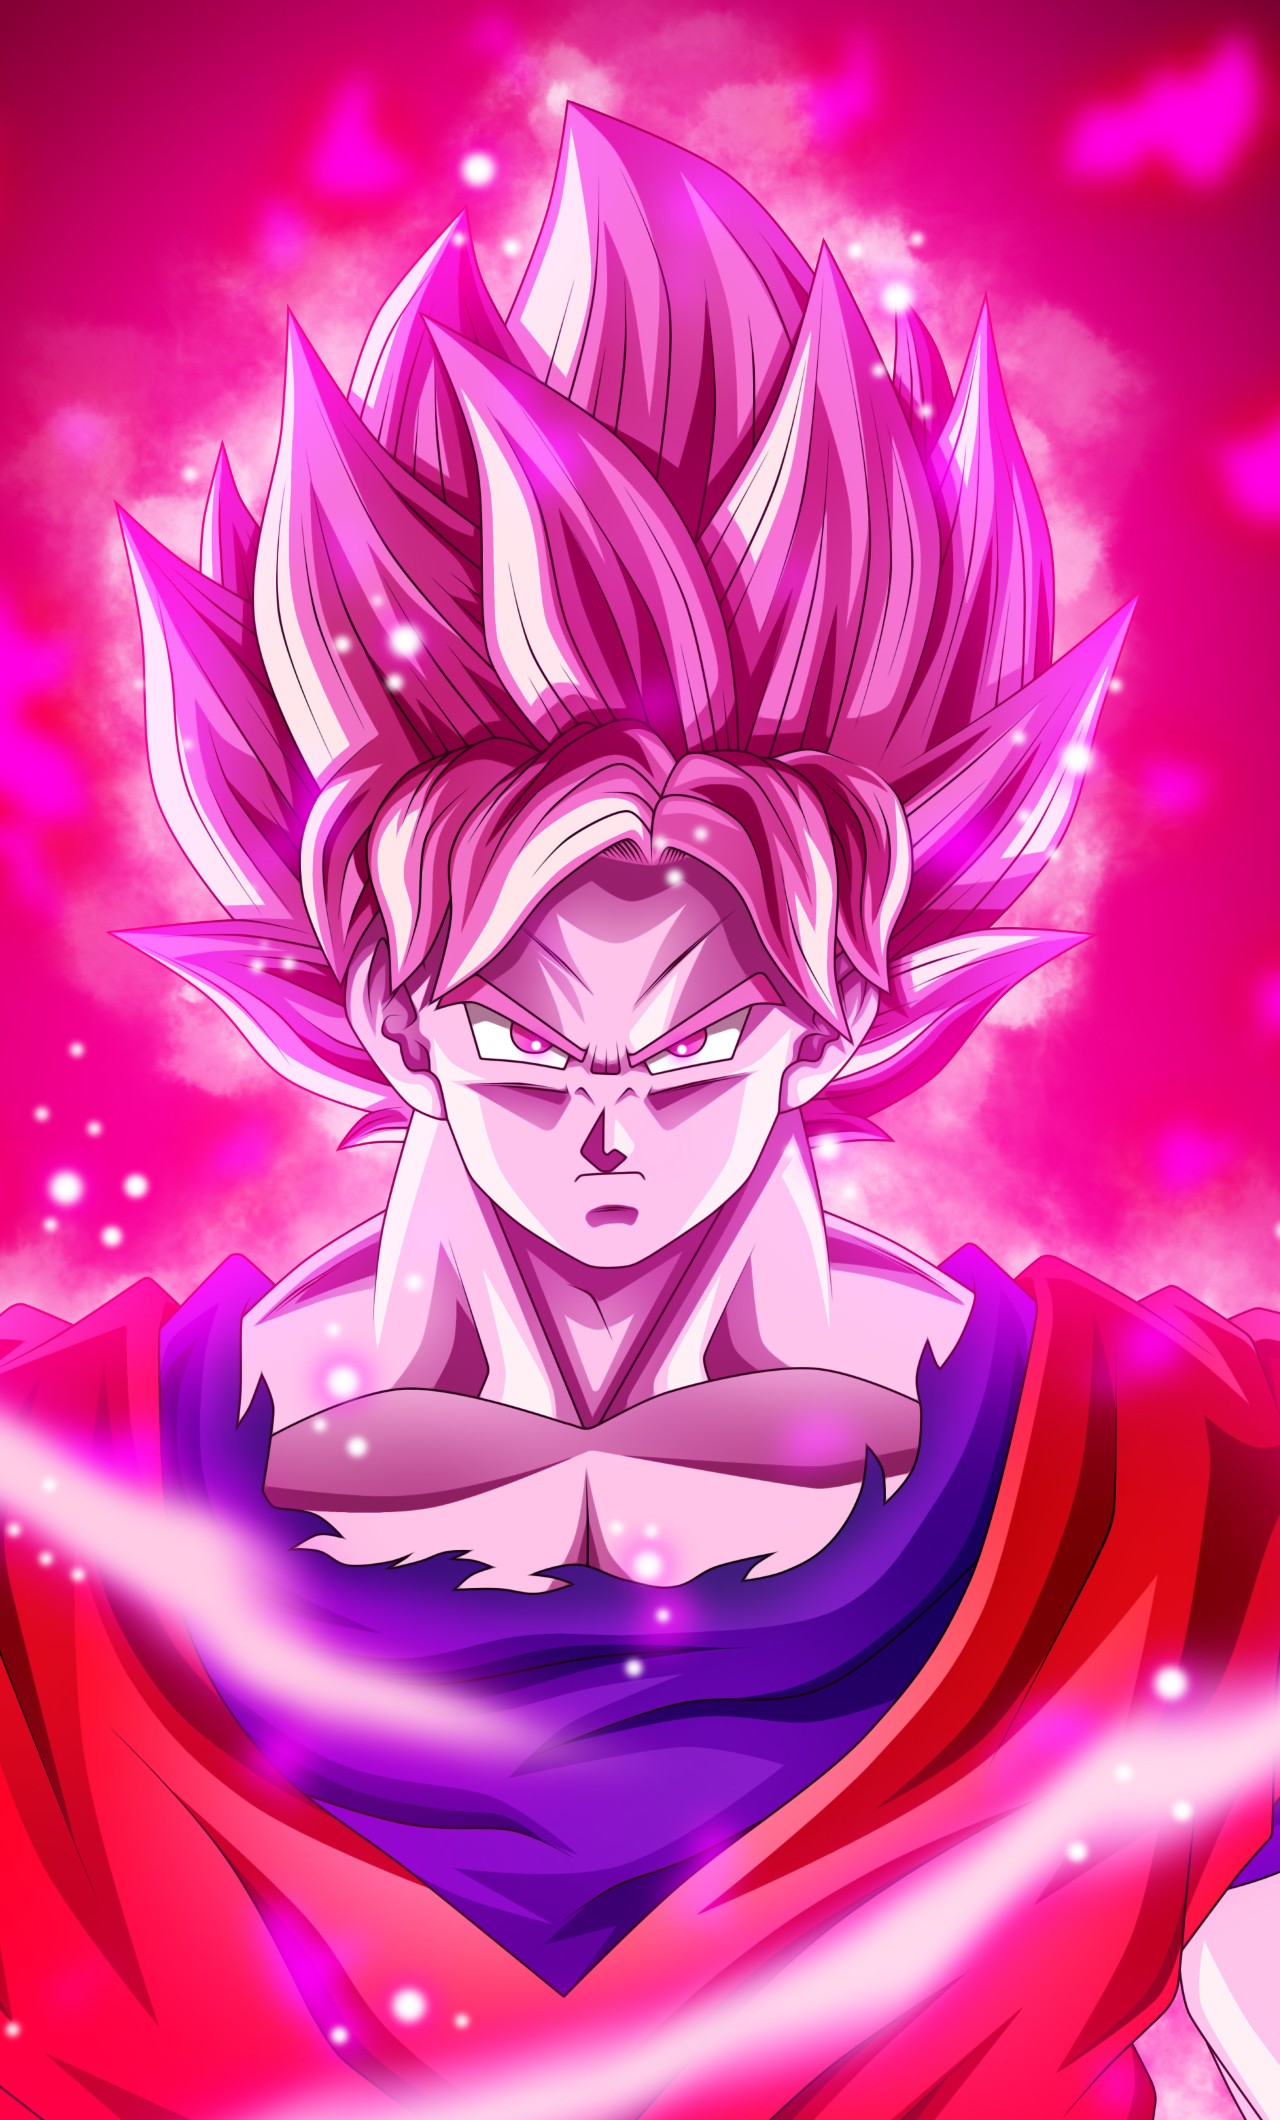 1280x2120 Goku Dragon Ball Super Iphone 6 Plus Wallpaper Hd Anime 4k Wallpapers Images Photos And Background